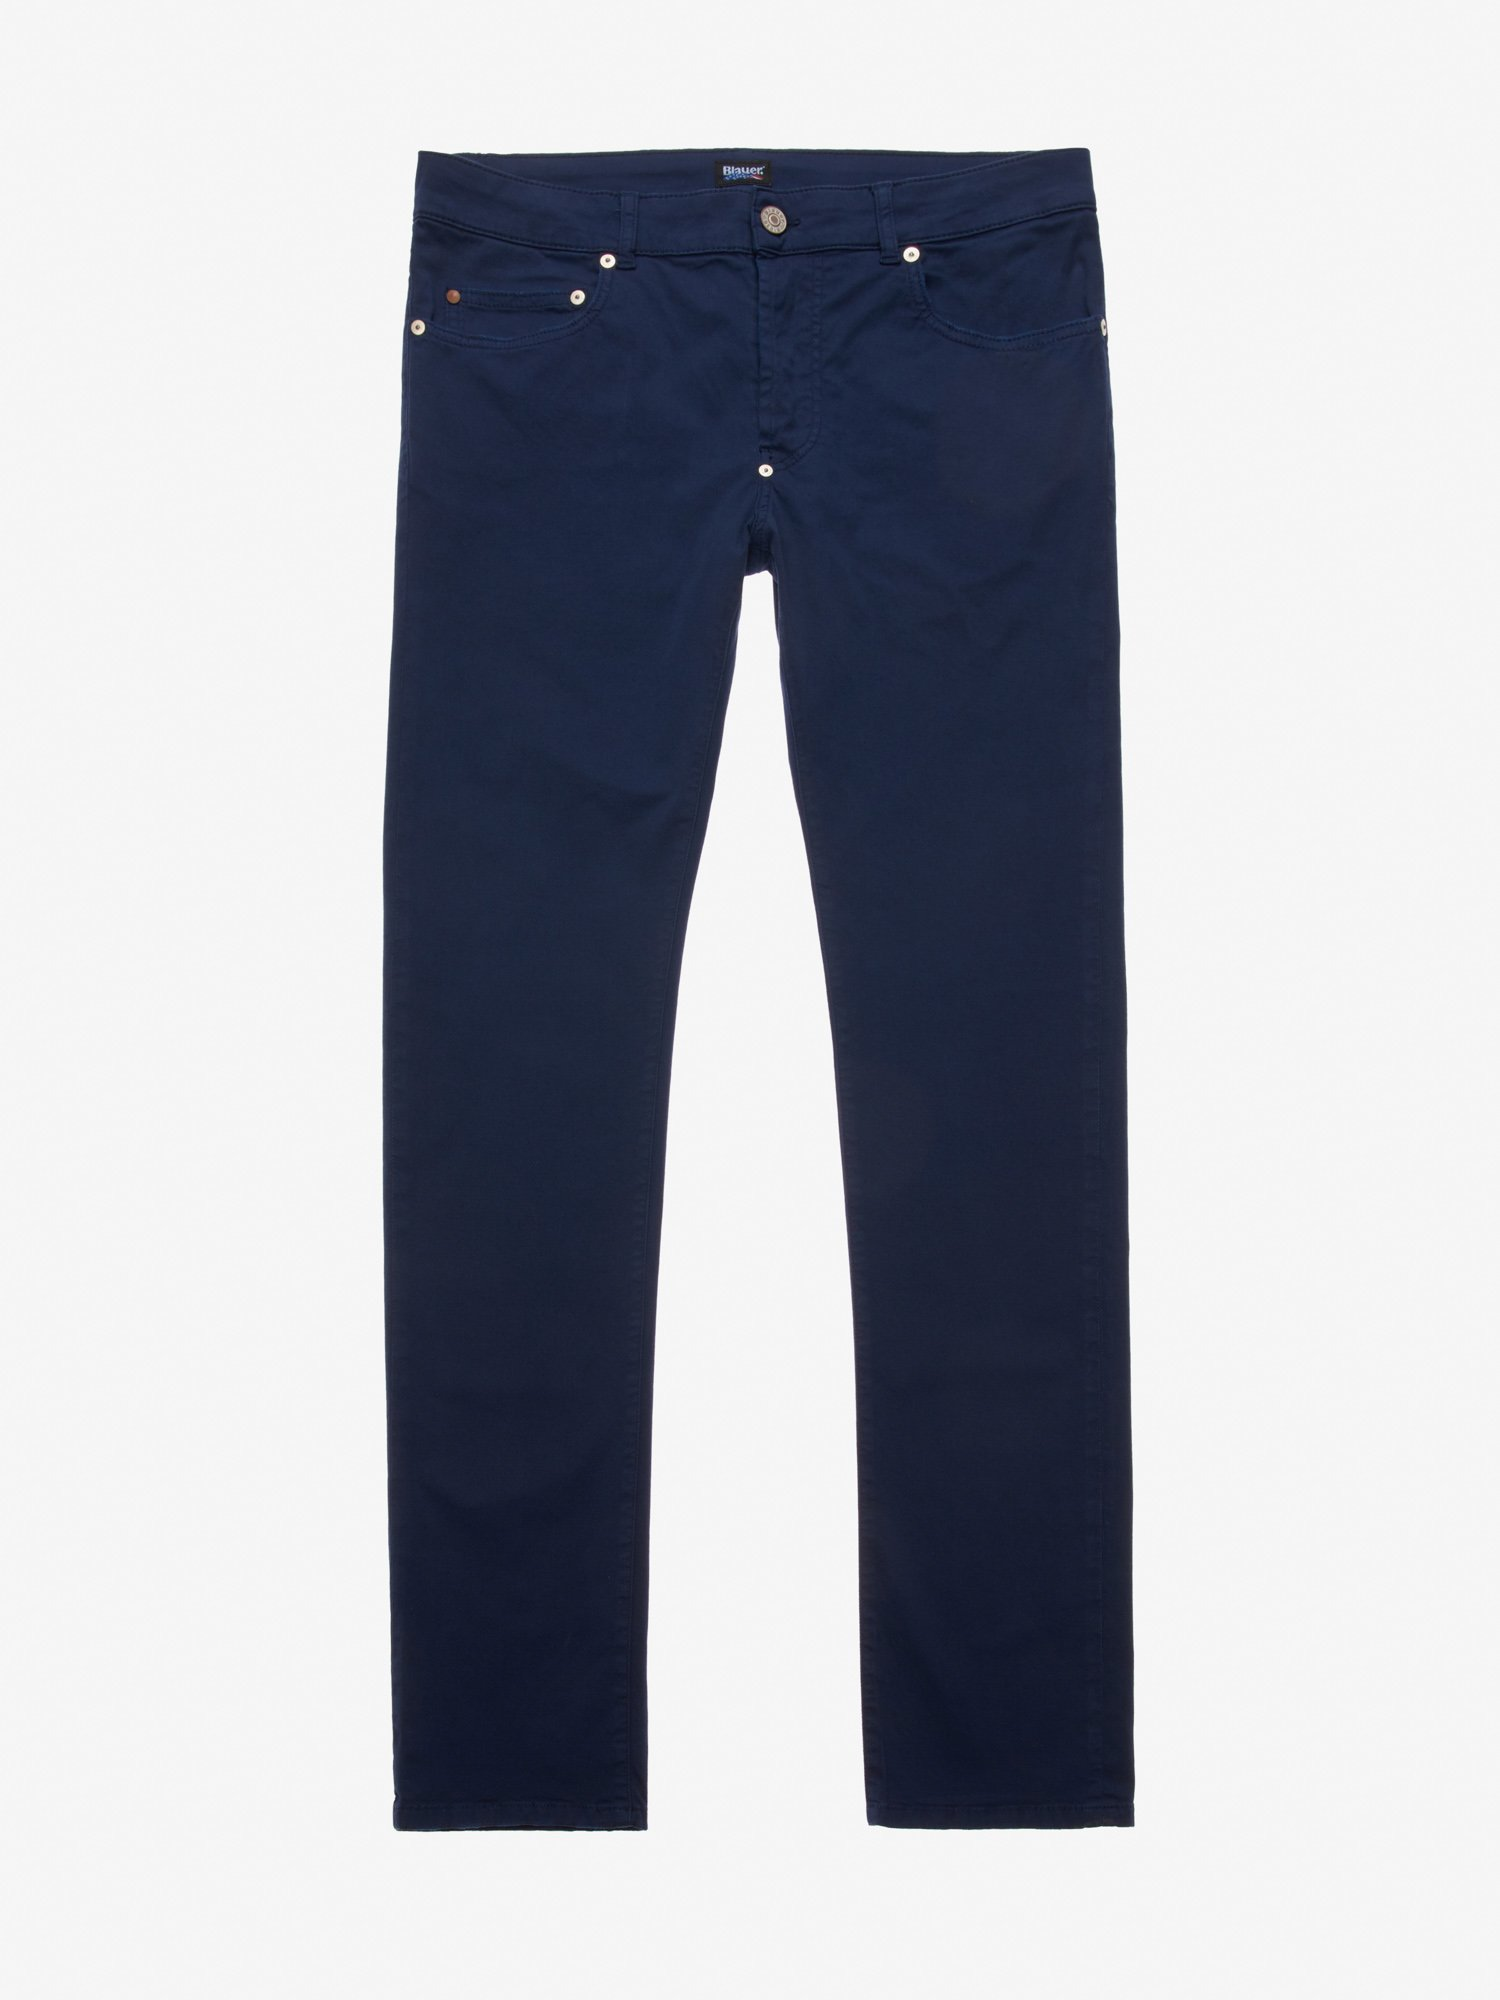 COTTON BULL TROUSERS - Blauer